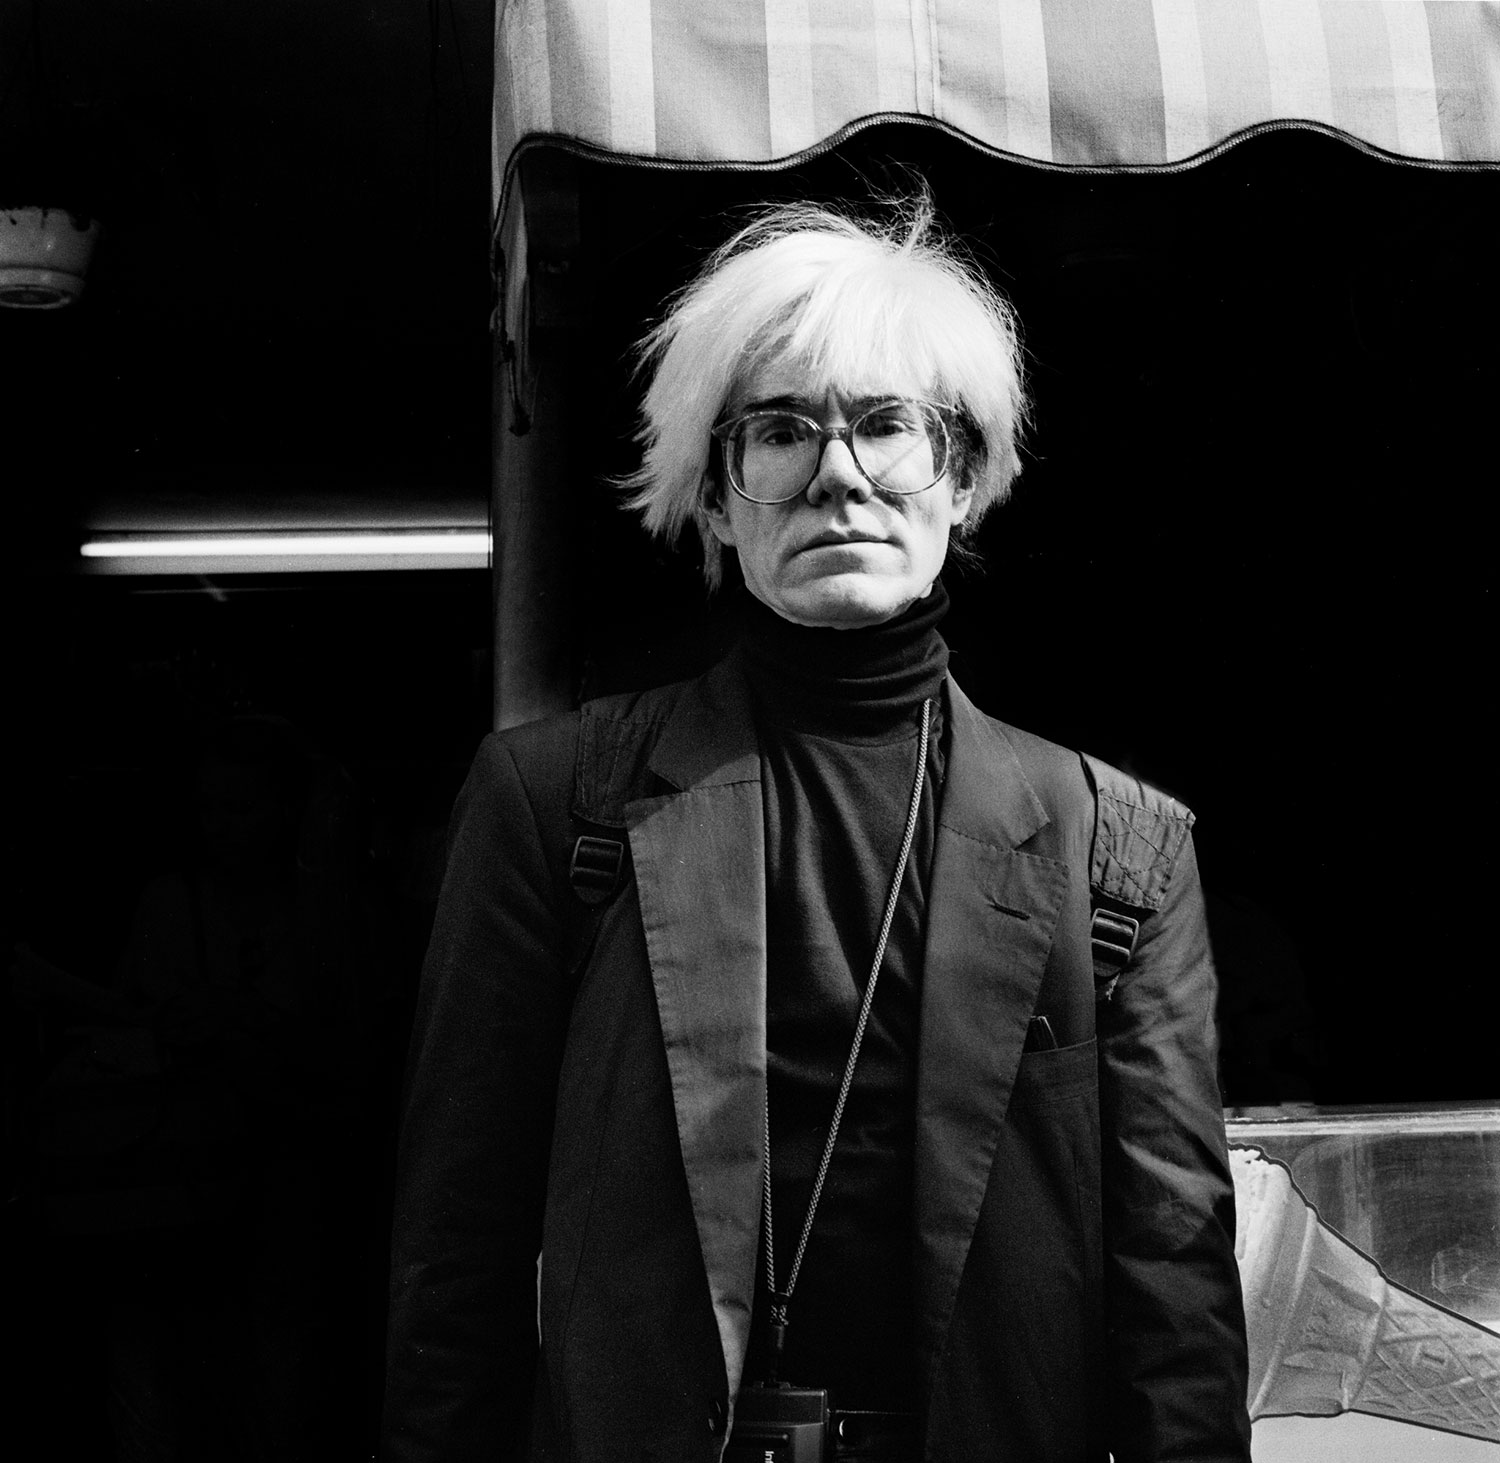 Andy Warhol in London by Richard Krall, 1986